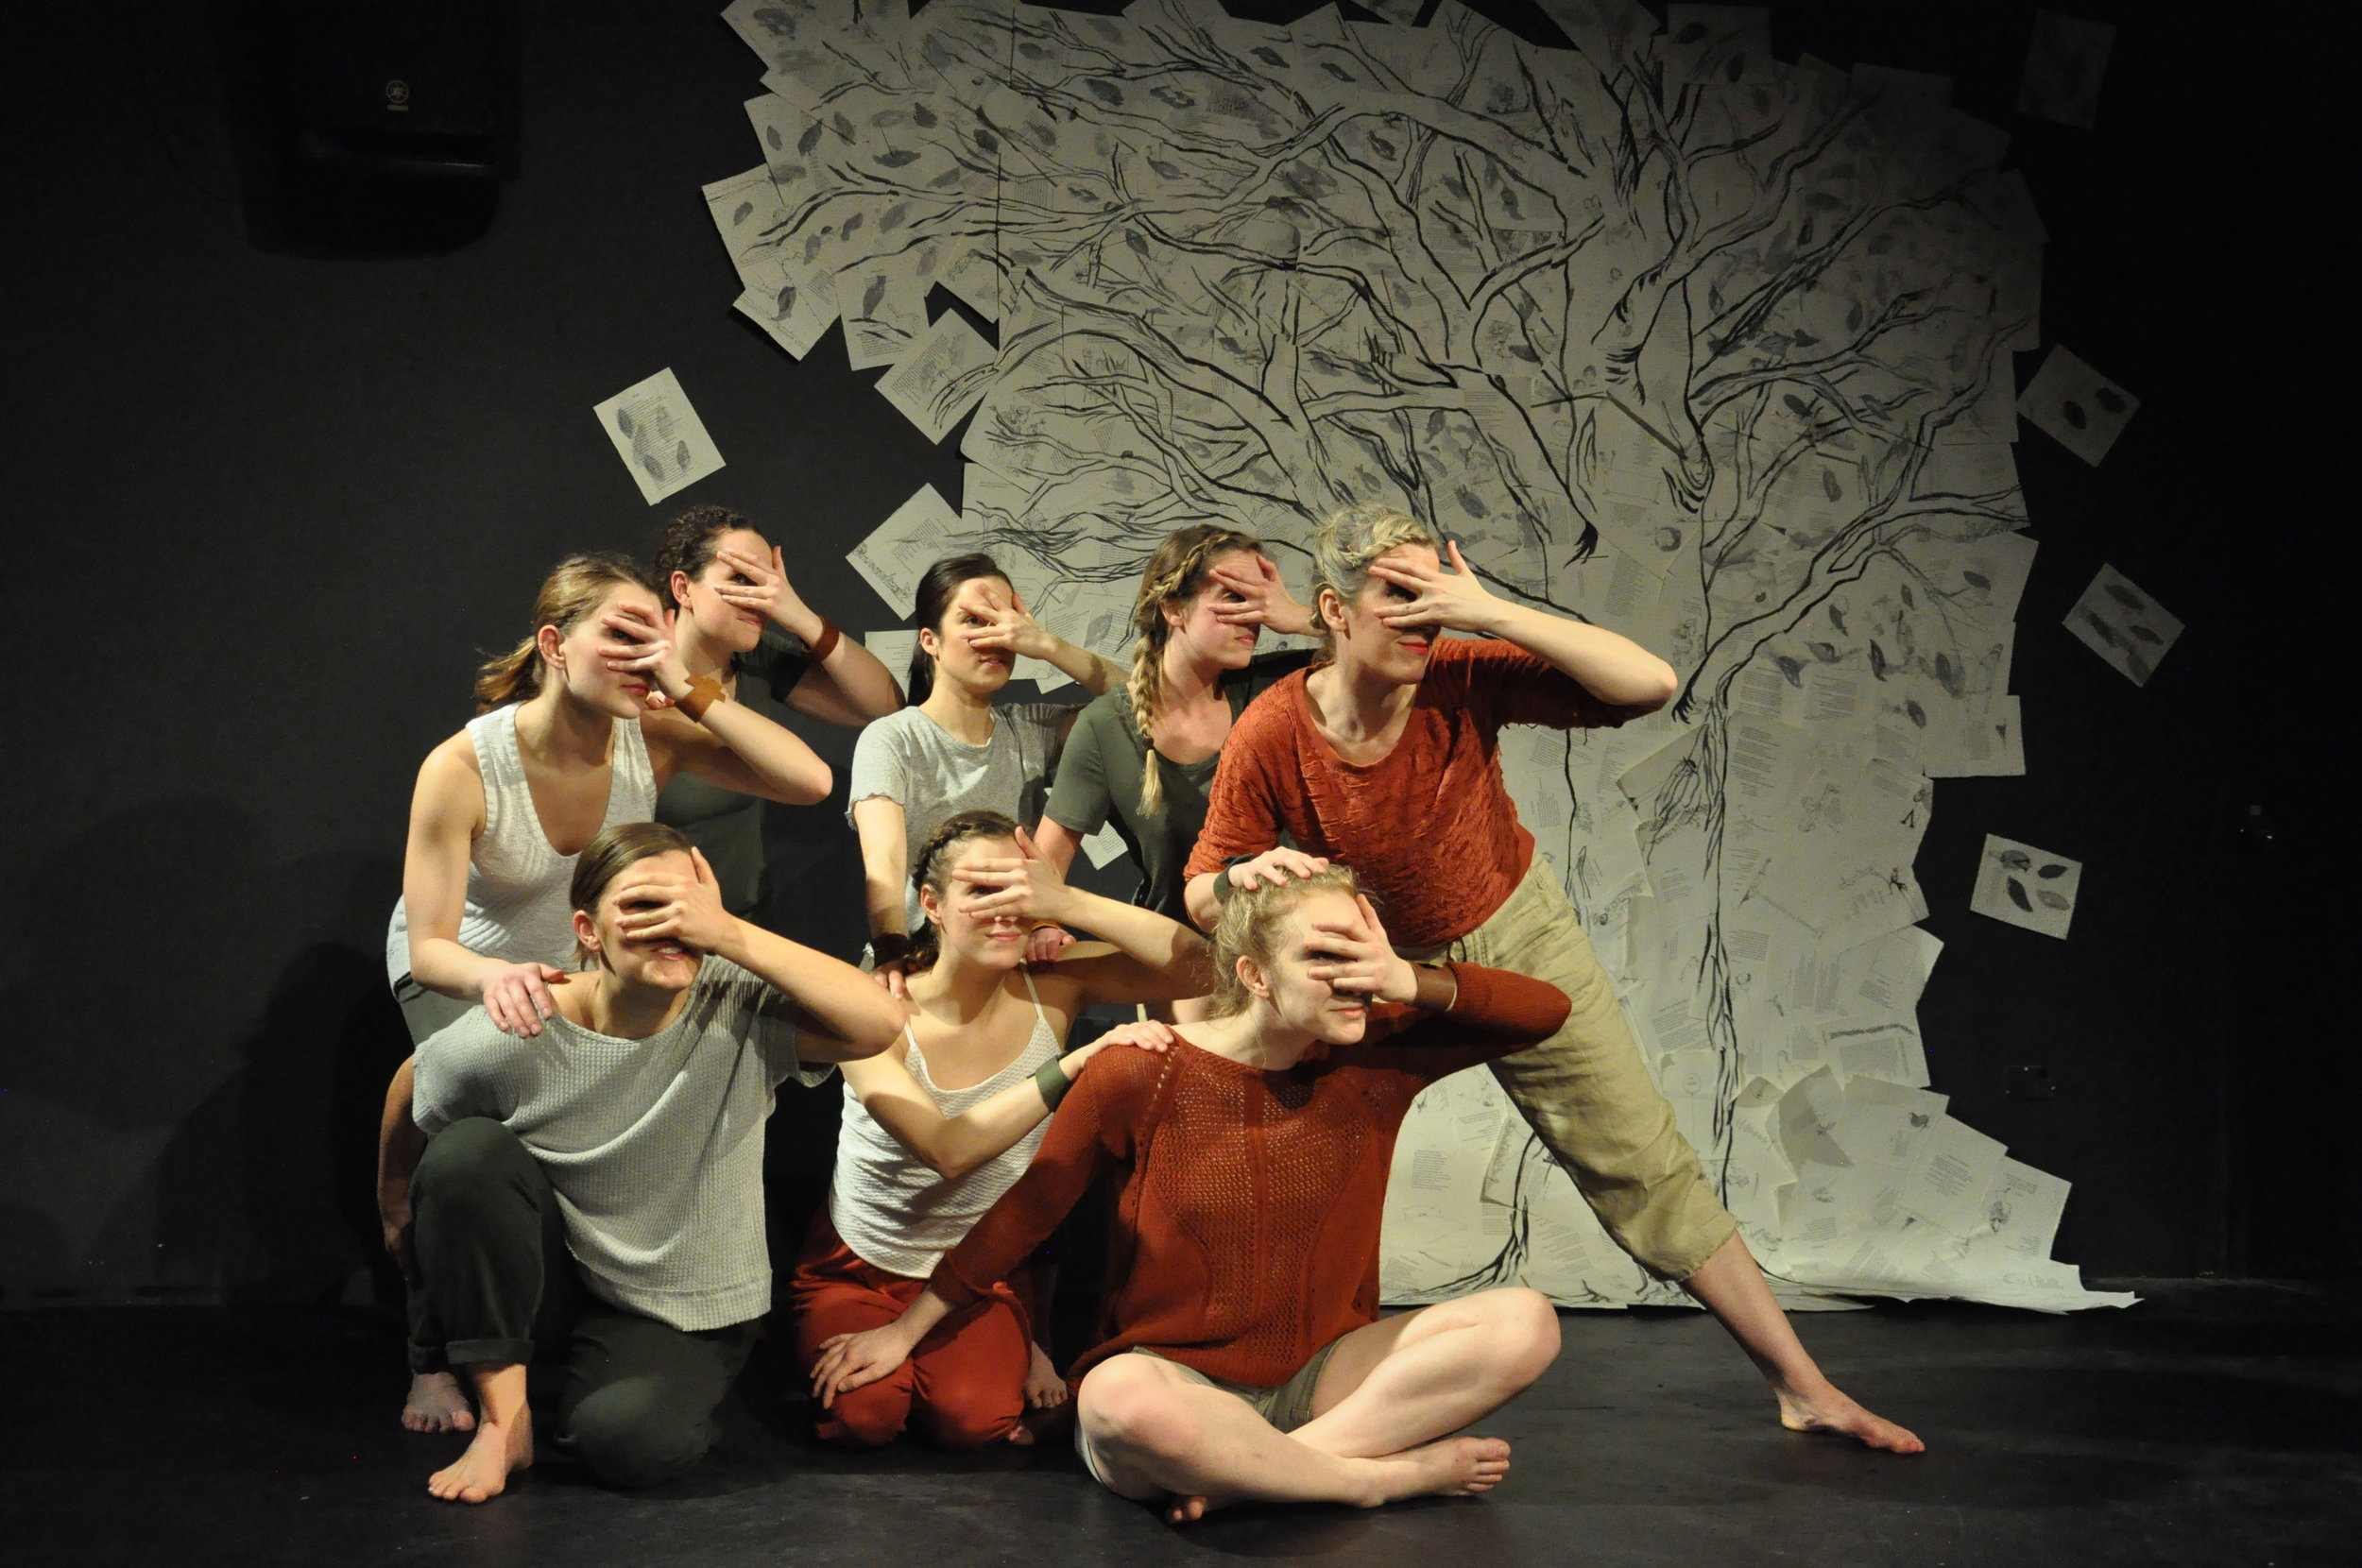 A RE-IMAGINED story  - of dependency and strength communicated through athletic and intricate choreography.